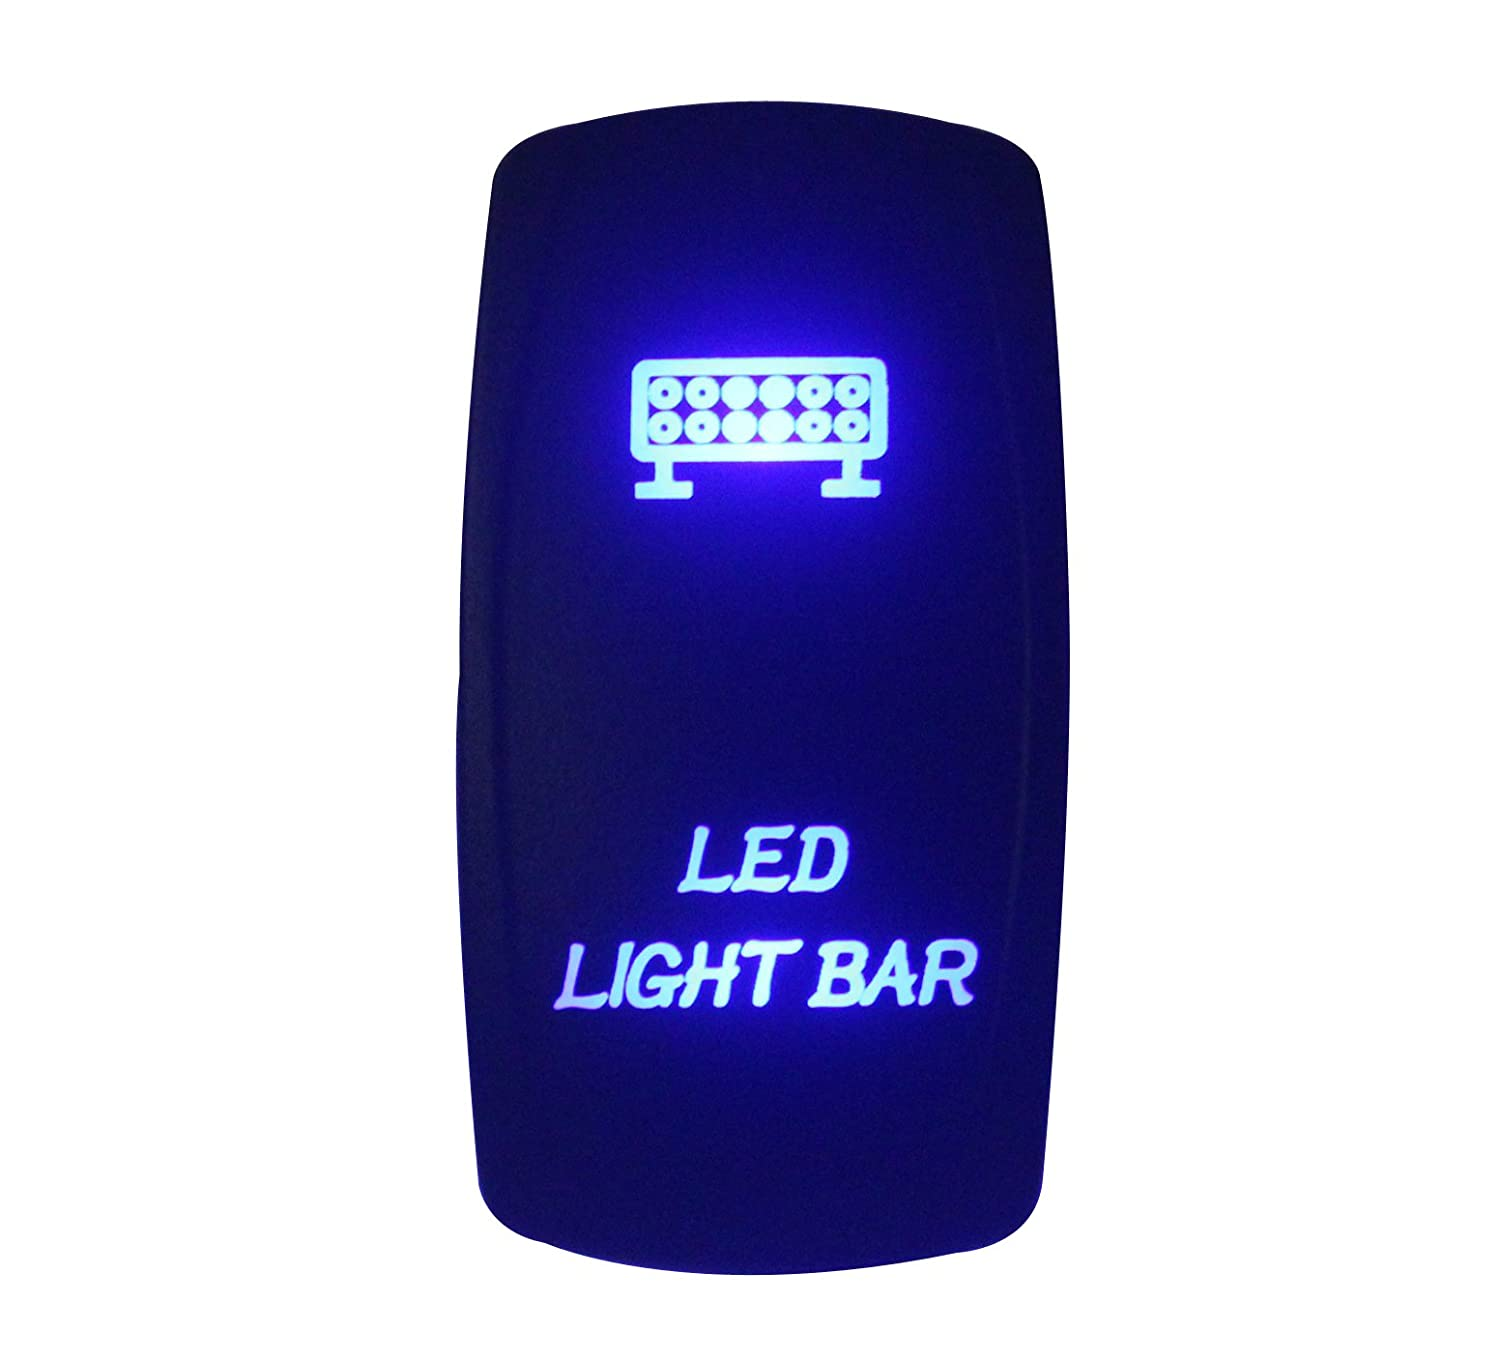 BANDC 12  V/24  V LED barra de luz lá ser grabado Rocker Interruptor LED azul 5  pines SPST ON-OFF para ARB Carling Narva estilo repuesto Marino grado impermeable IP66